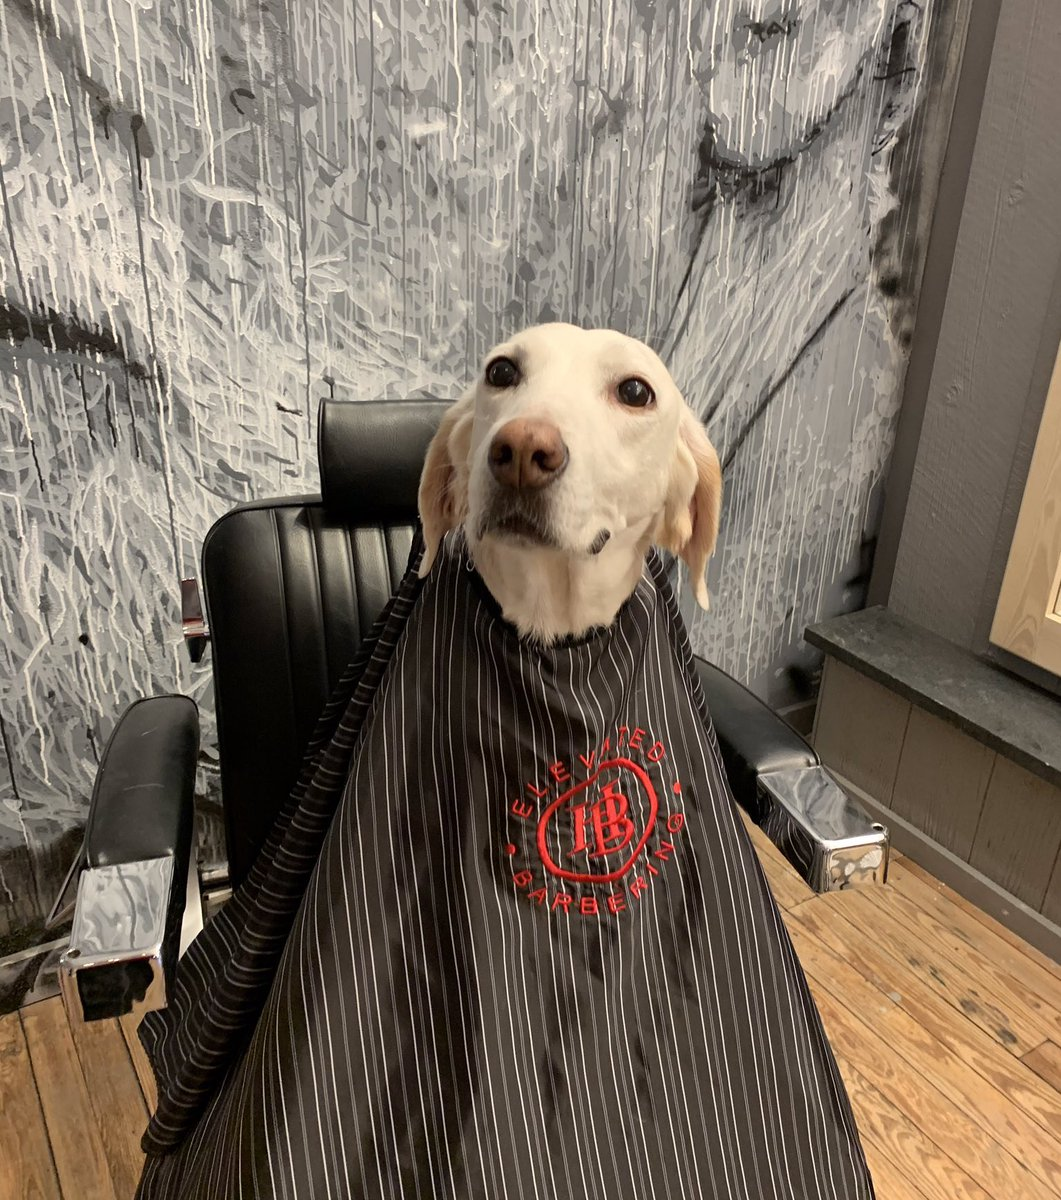 This is Peach. She doesn't even need a haircut. Just likes that the chair spins in circles. 13/10 please spin her